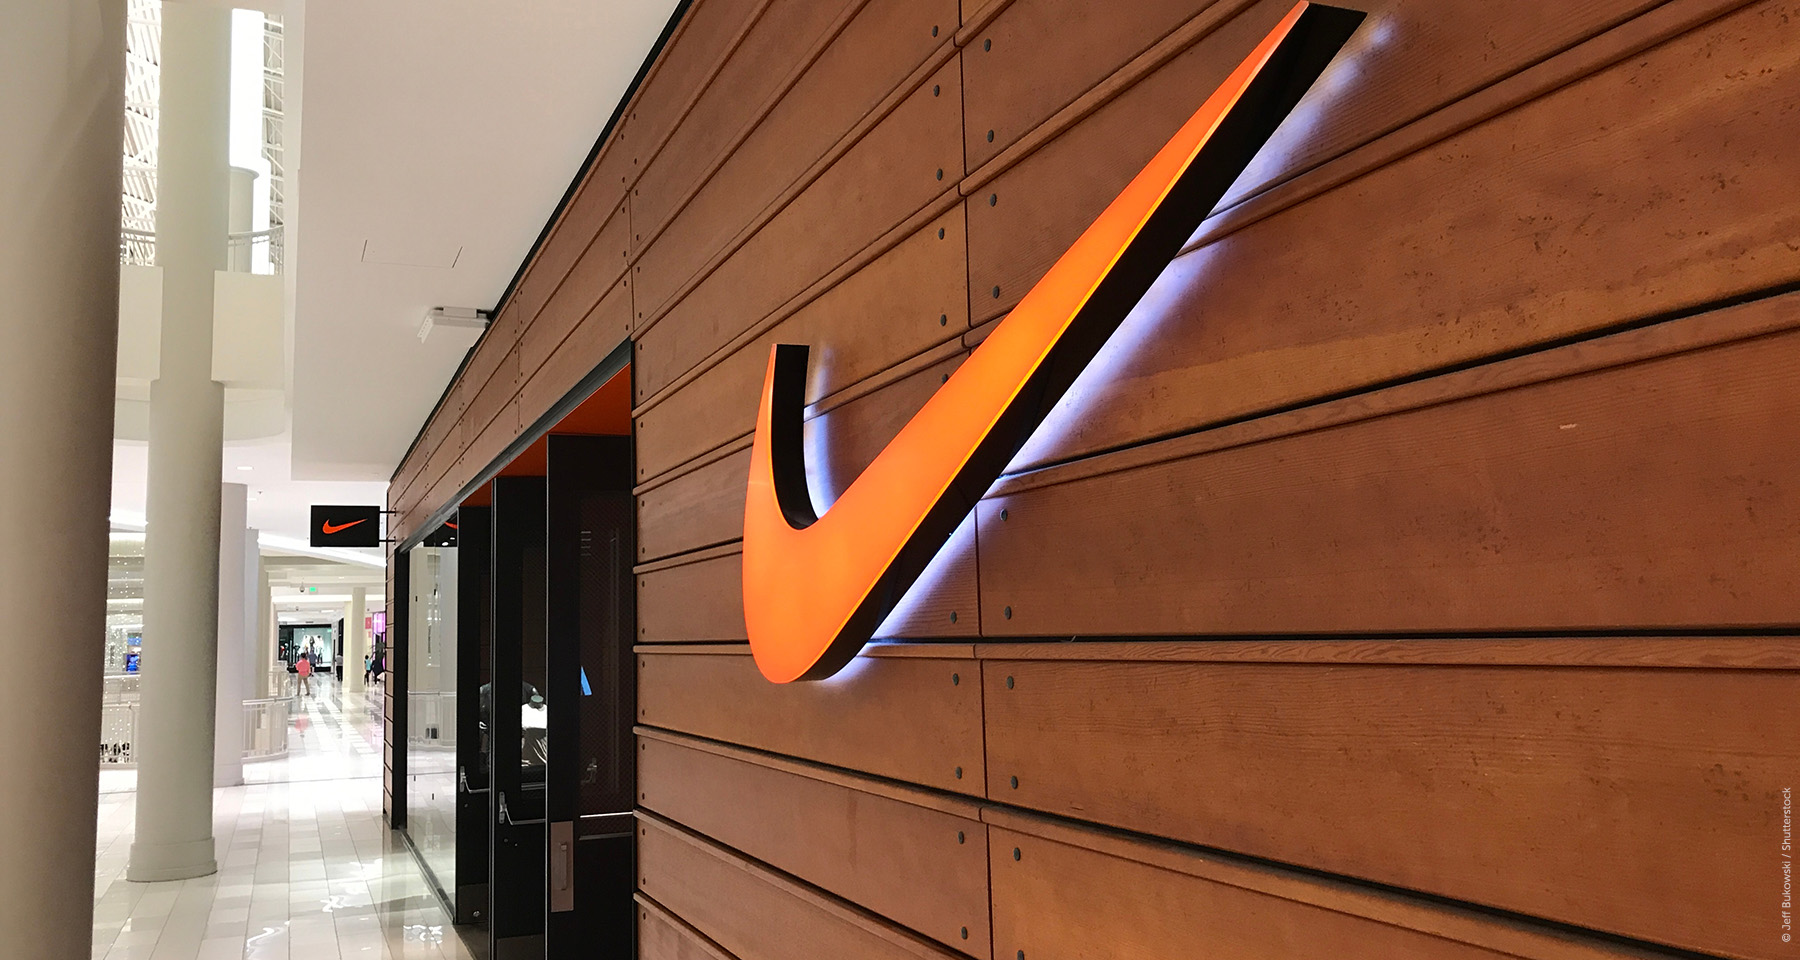 Nike: social champion or calculated marketer?